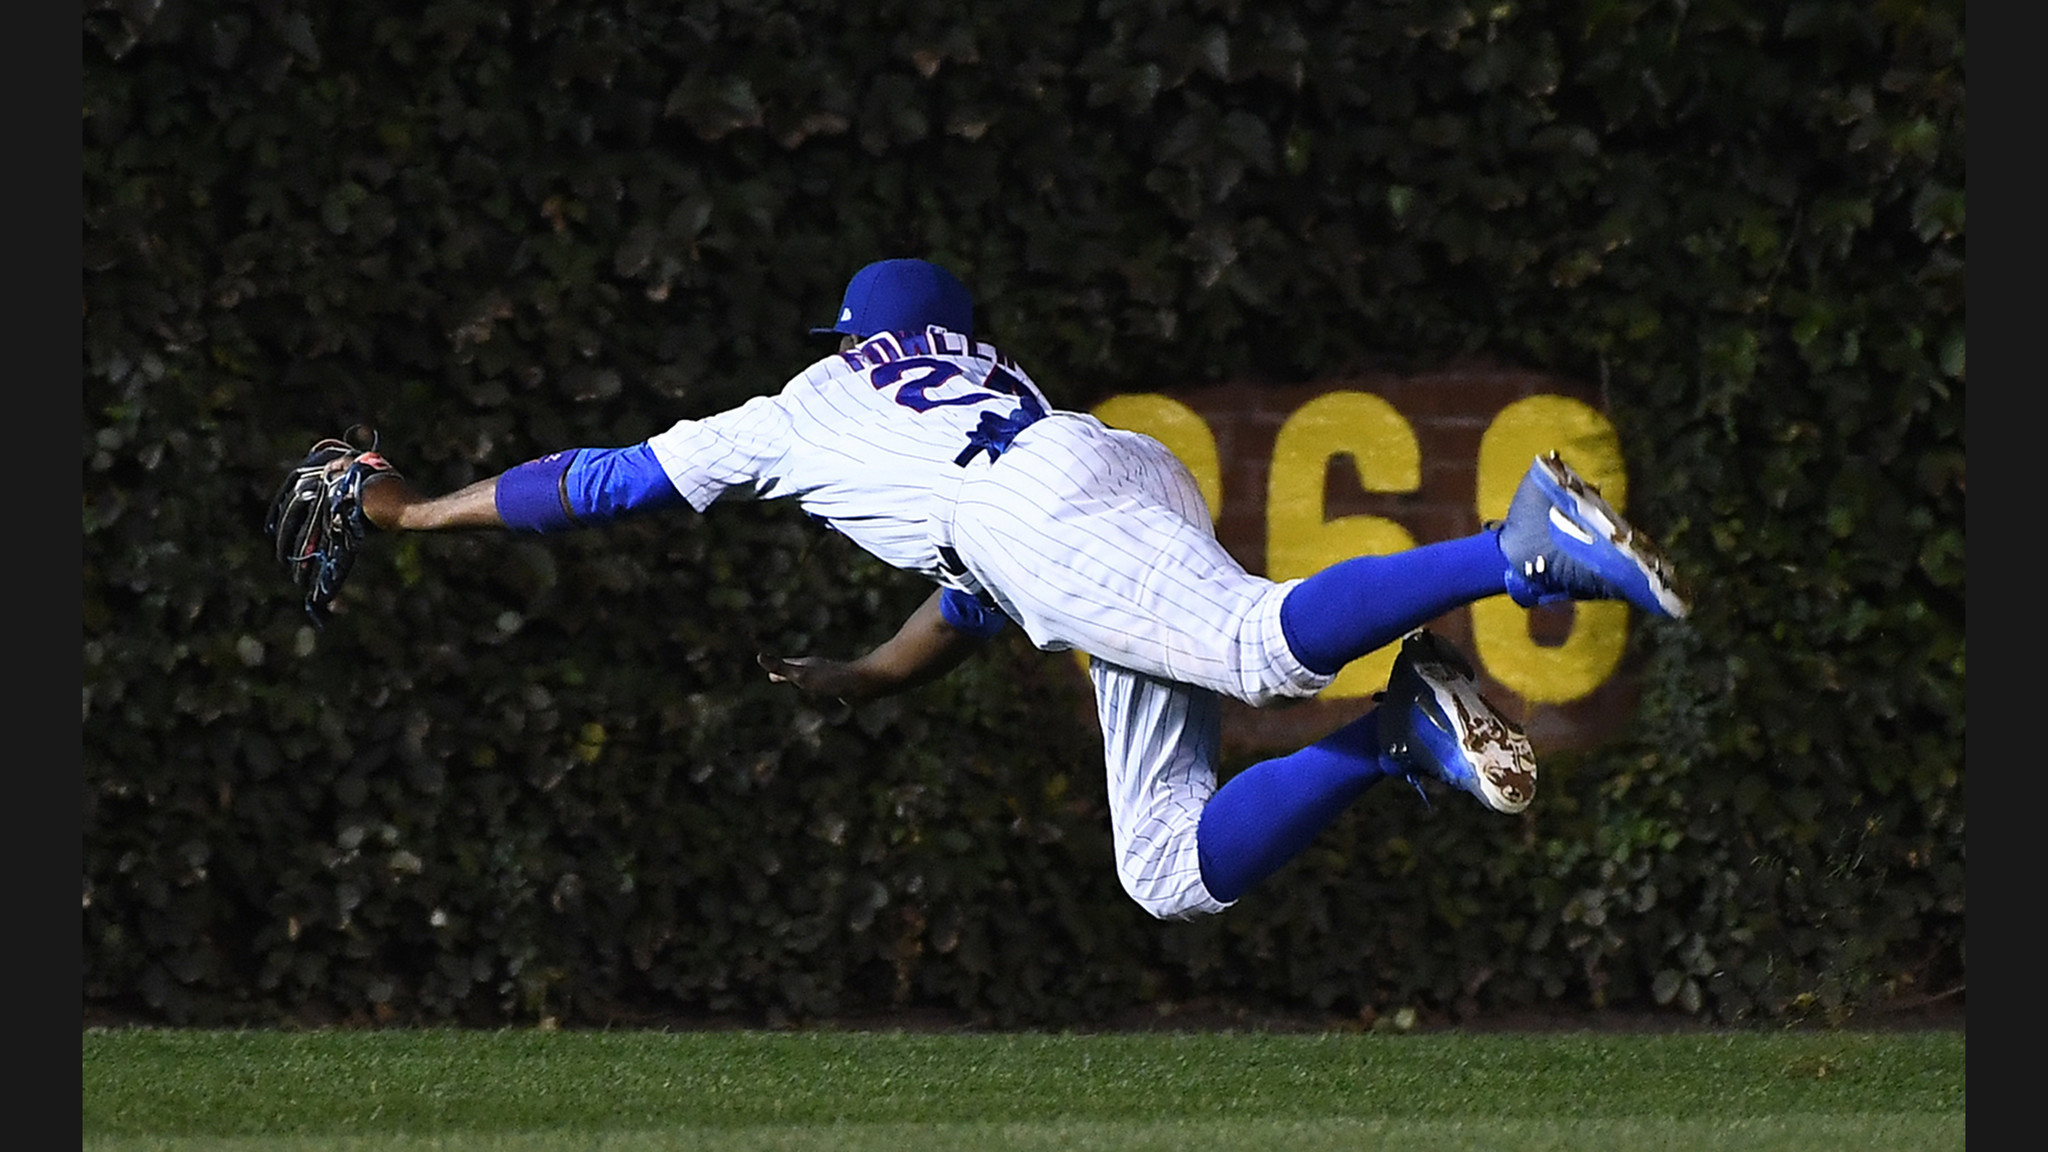 Cubs were in proper alignment for defense and Game 1 win over Dodgers  (5.99 12) f733dadab